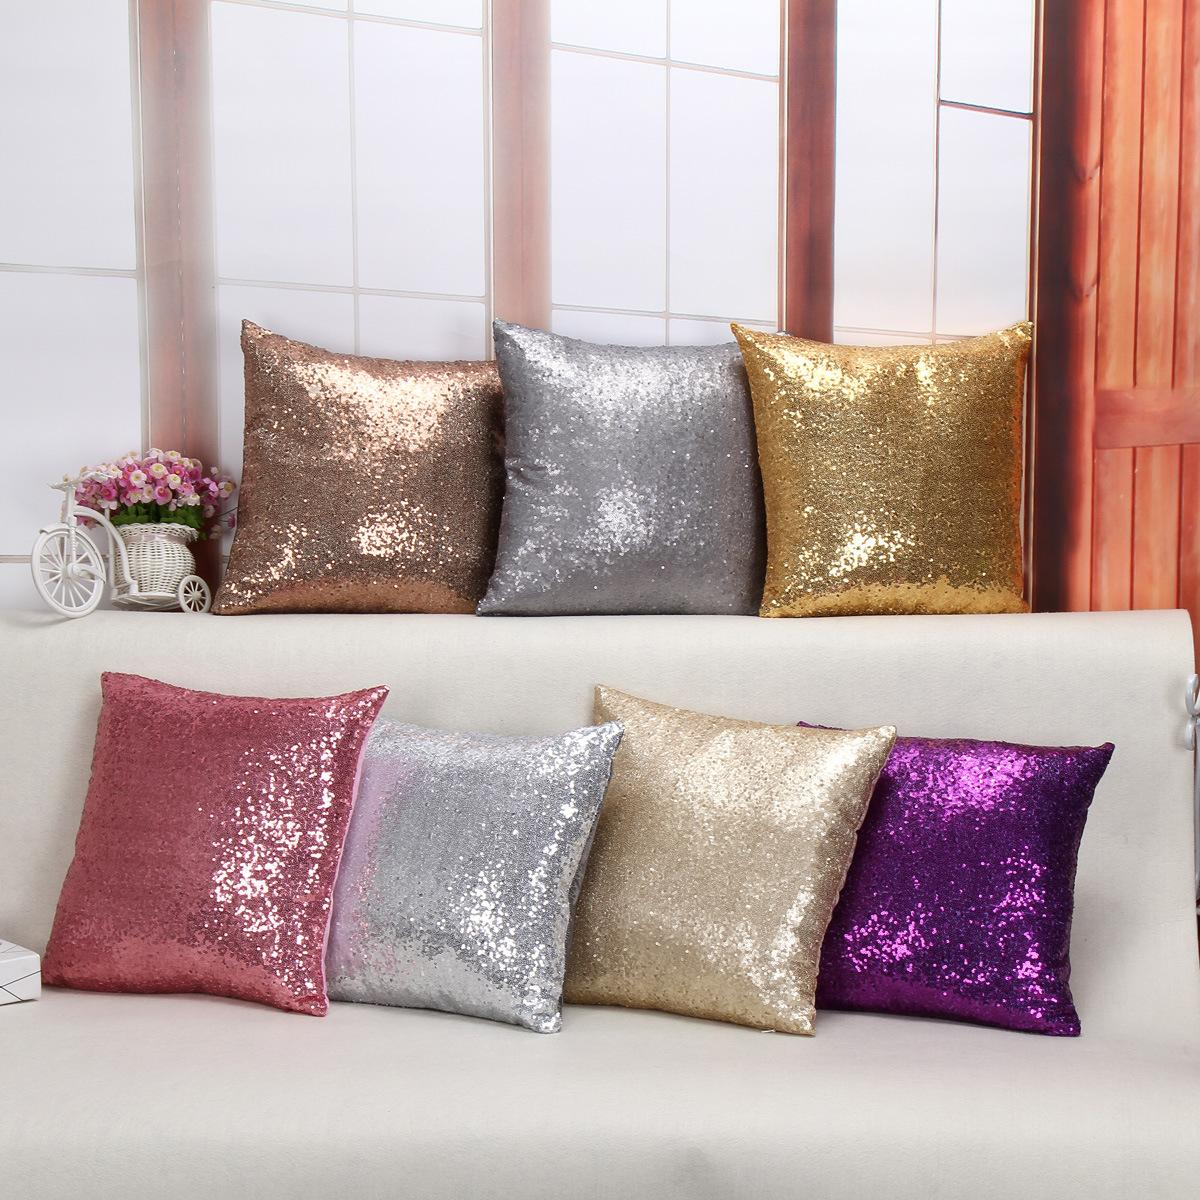 Christmas Home Decor Fashion Luxury 40*40cm Sequin Cushion Cover  Multicolors Sparkling Square Pillow Cover Home Textile Sofa Decor Porch Furniture  Cushions ...